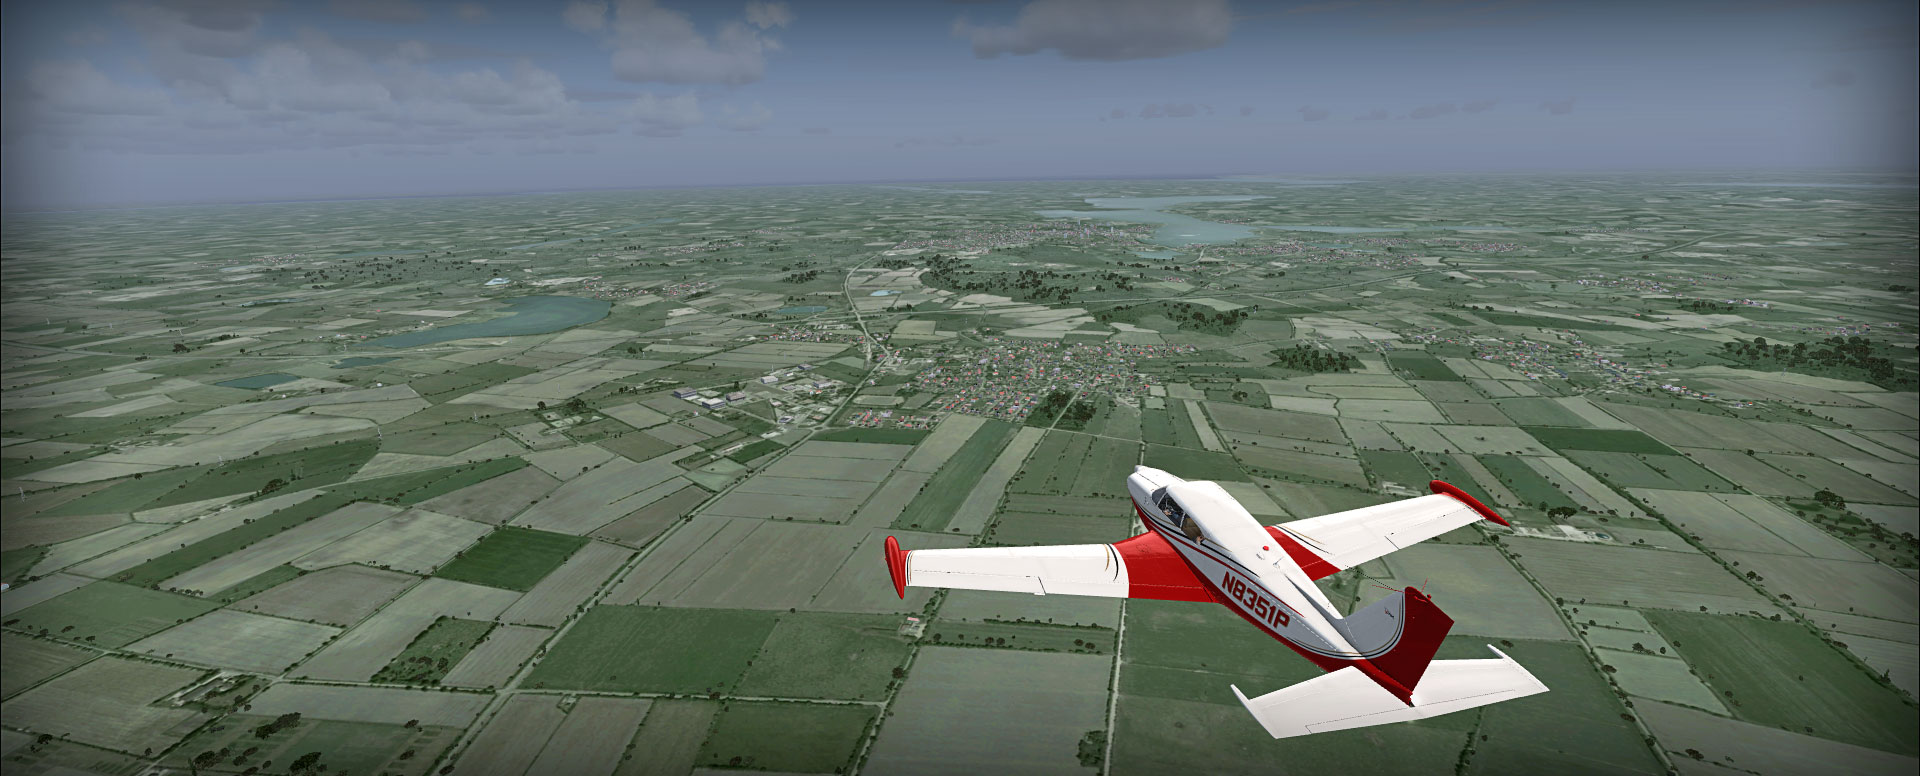 Northern Germany - VFR route #1